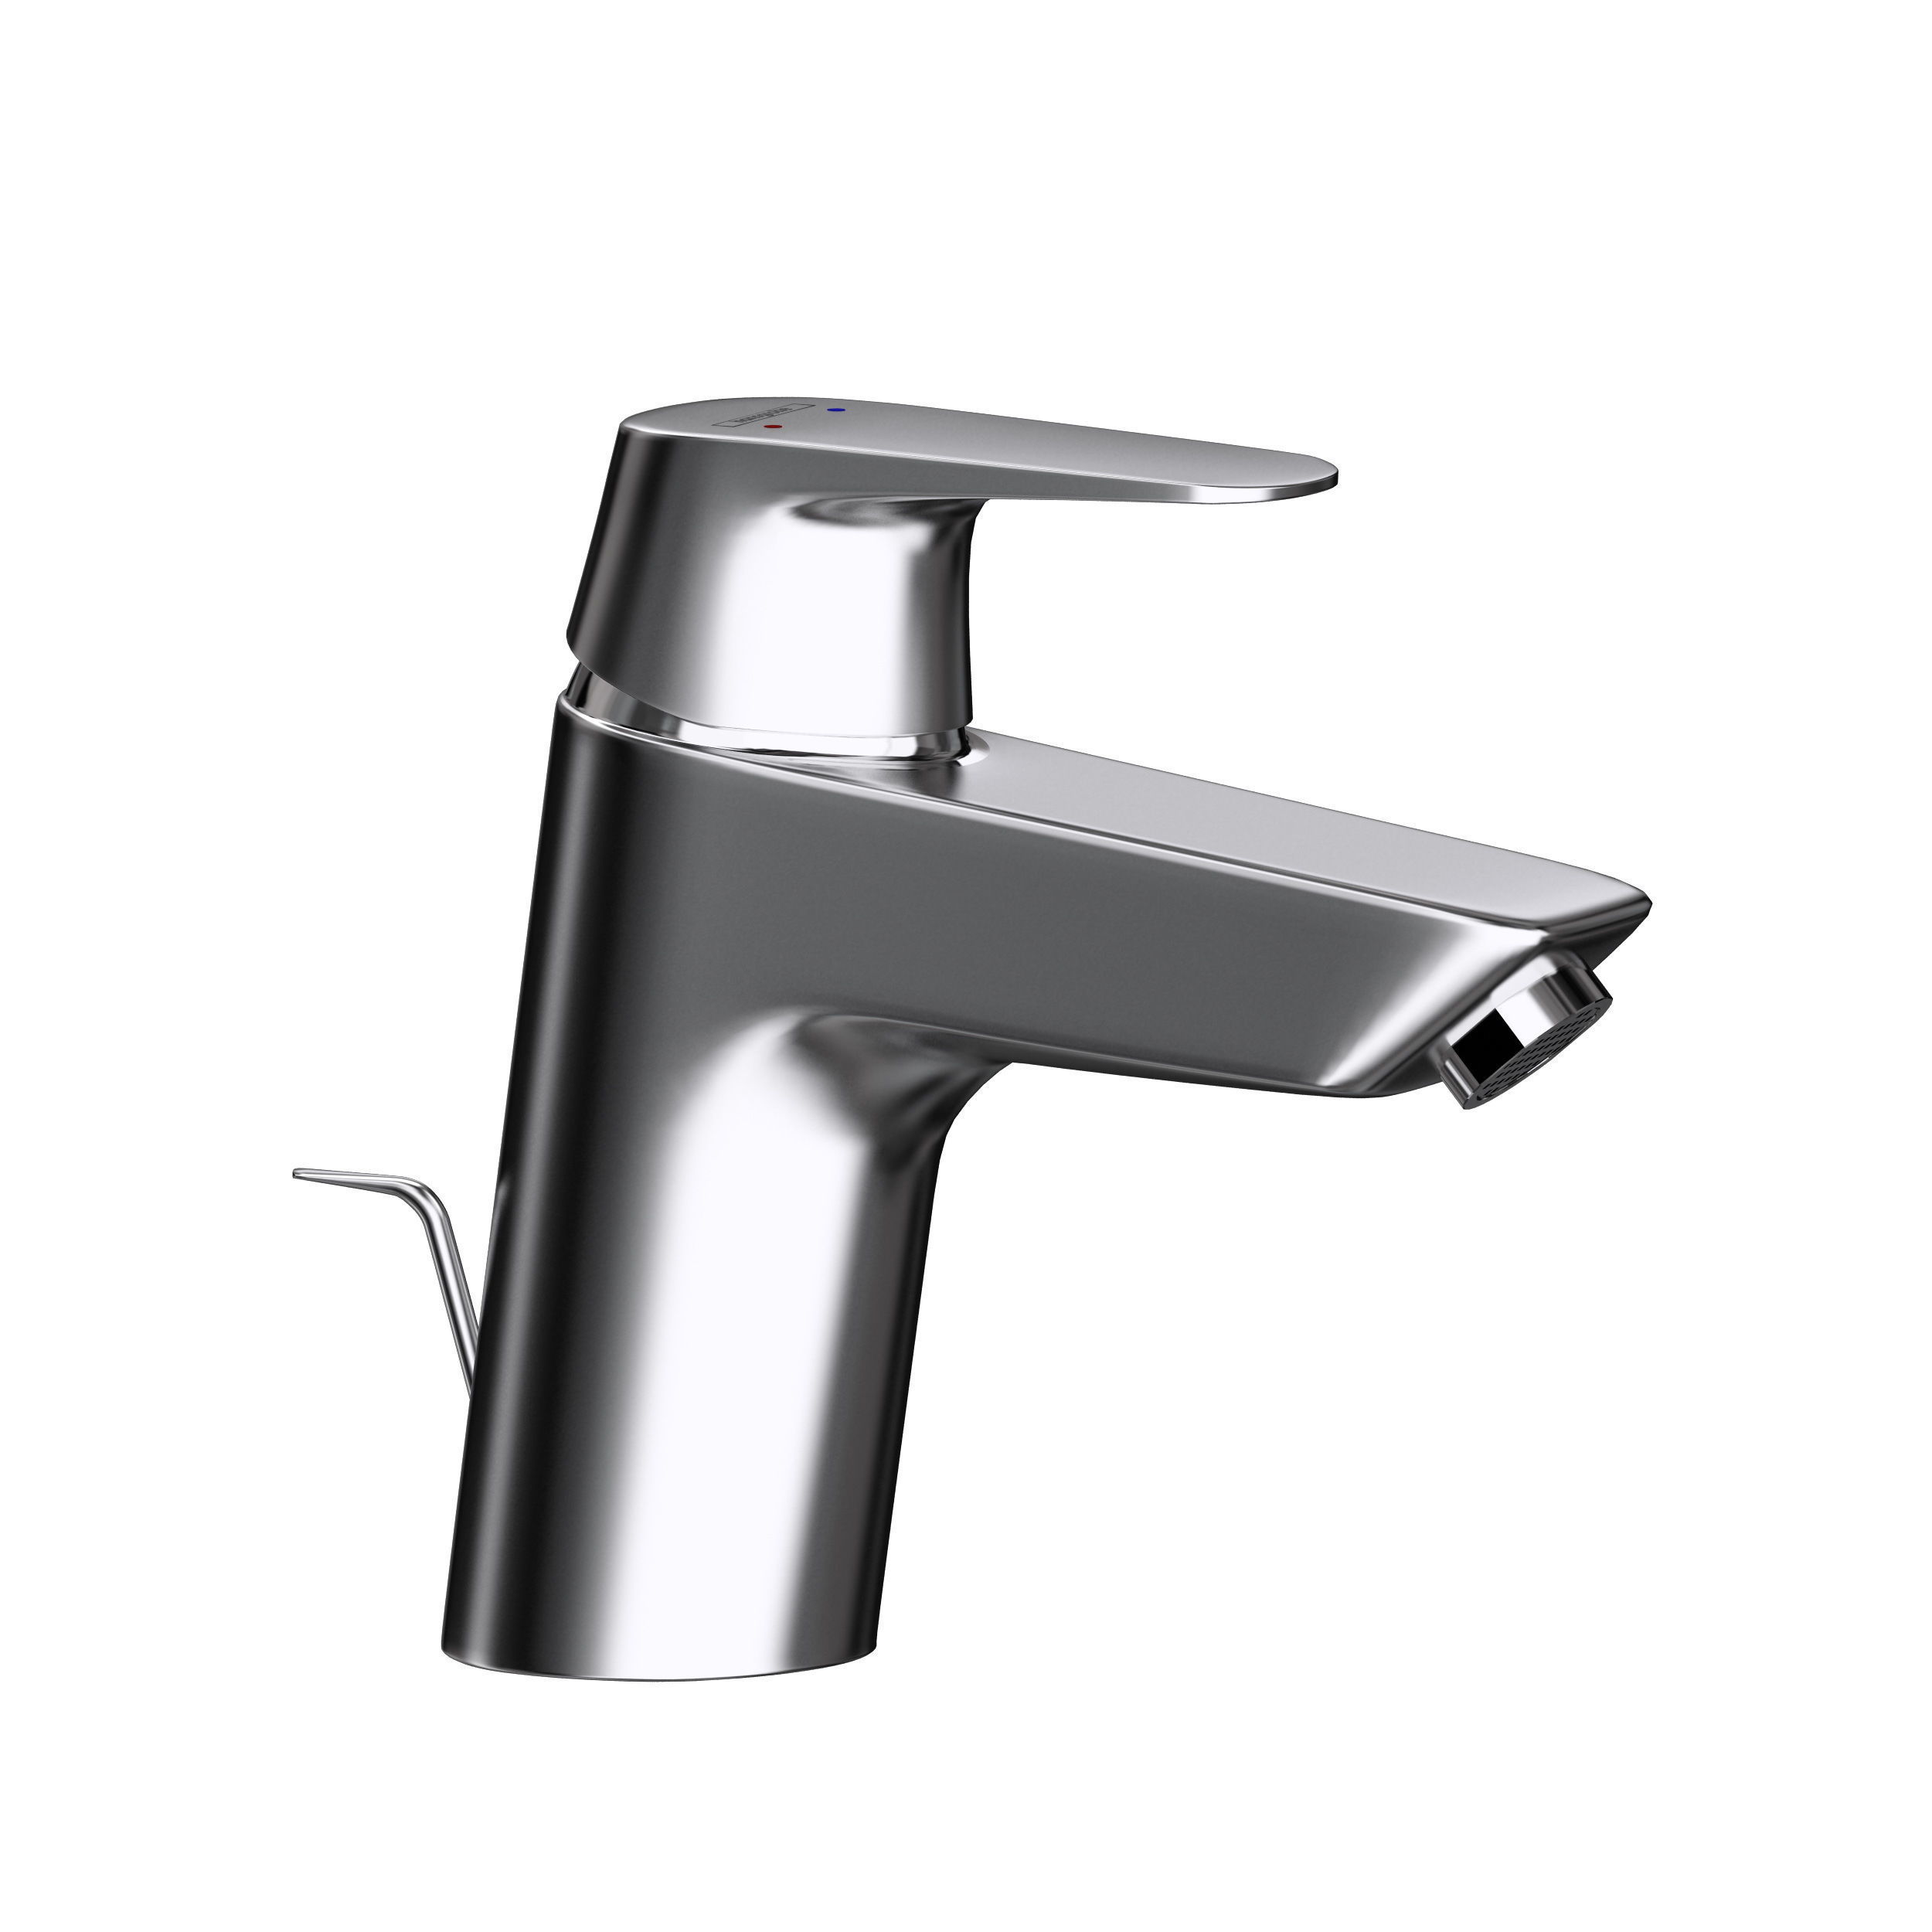 3D model Hansgrohe basin mixer 70 | CGTrader